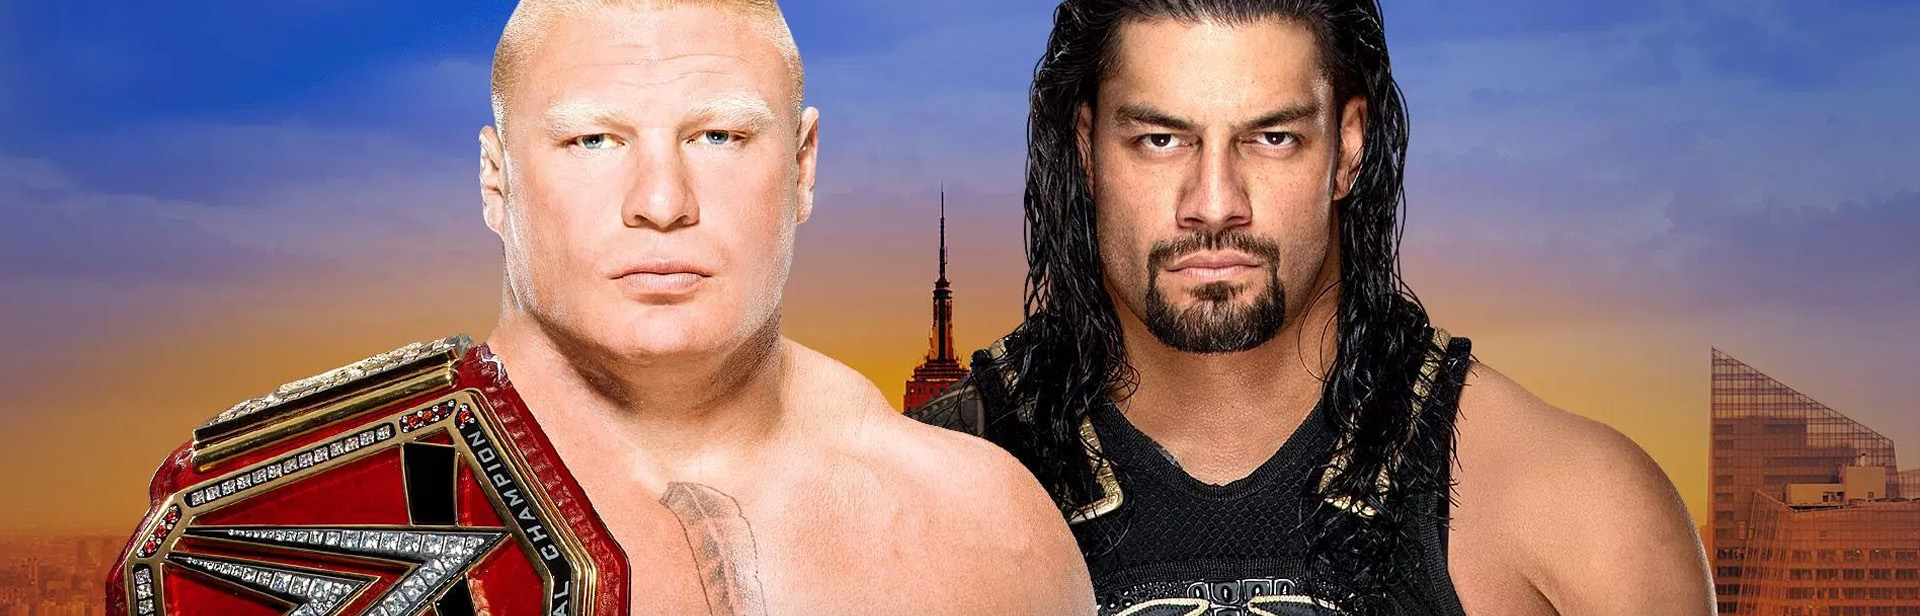 WWE SummerSlam matches, card & how to watch